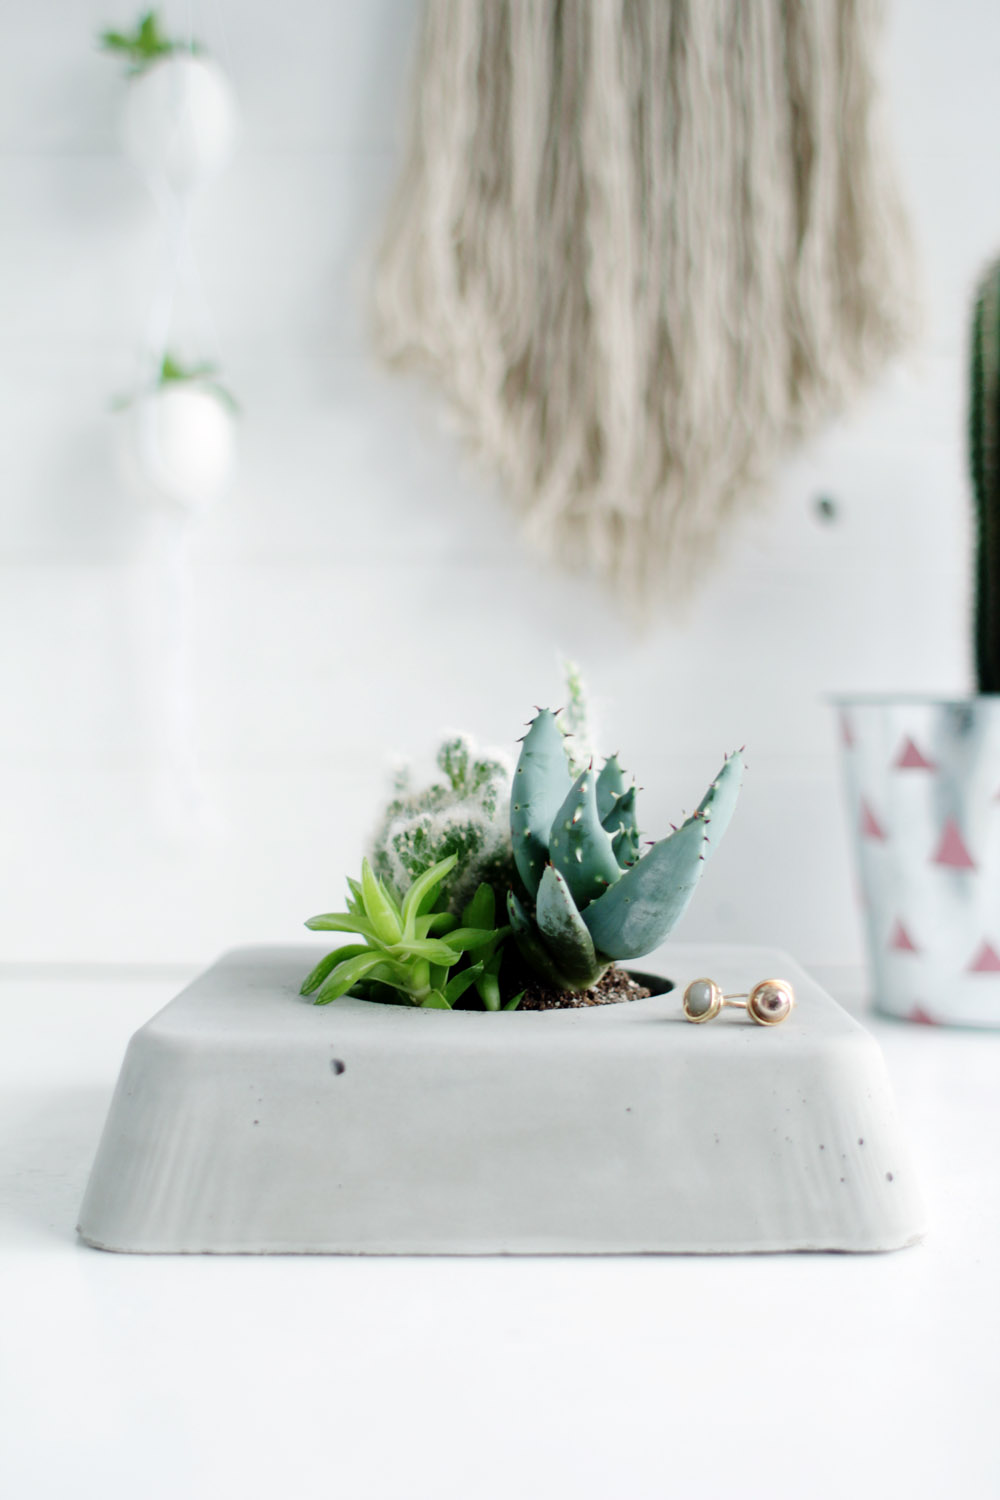 DIY Concrete Succulent Planter   Household Appliance Evaluation Reviews,  Ratings and Buying Guides